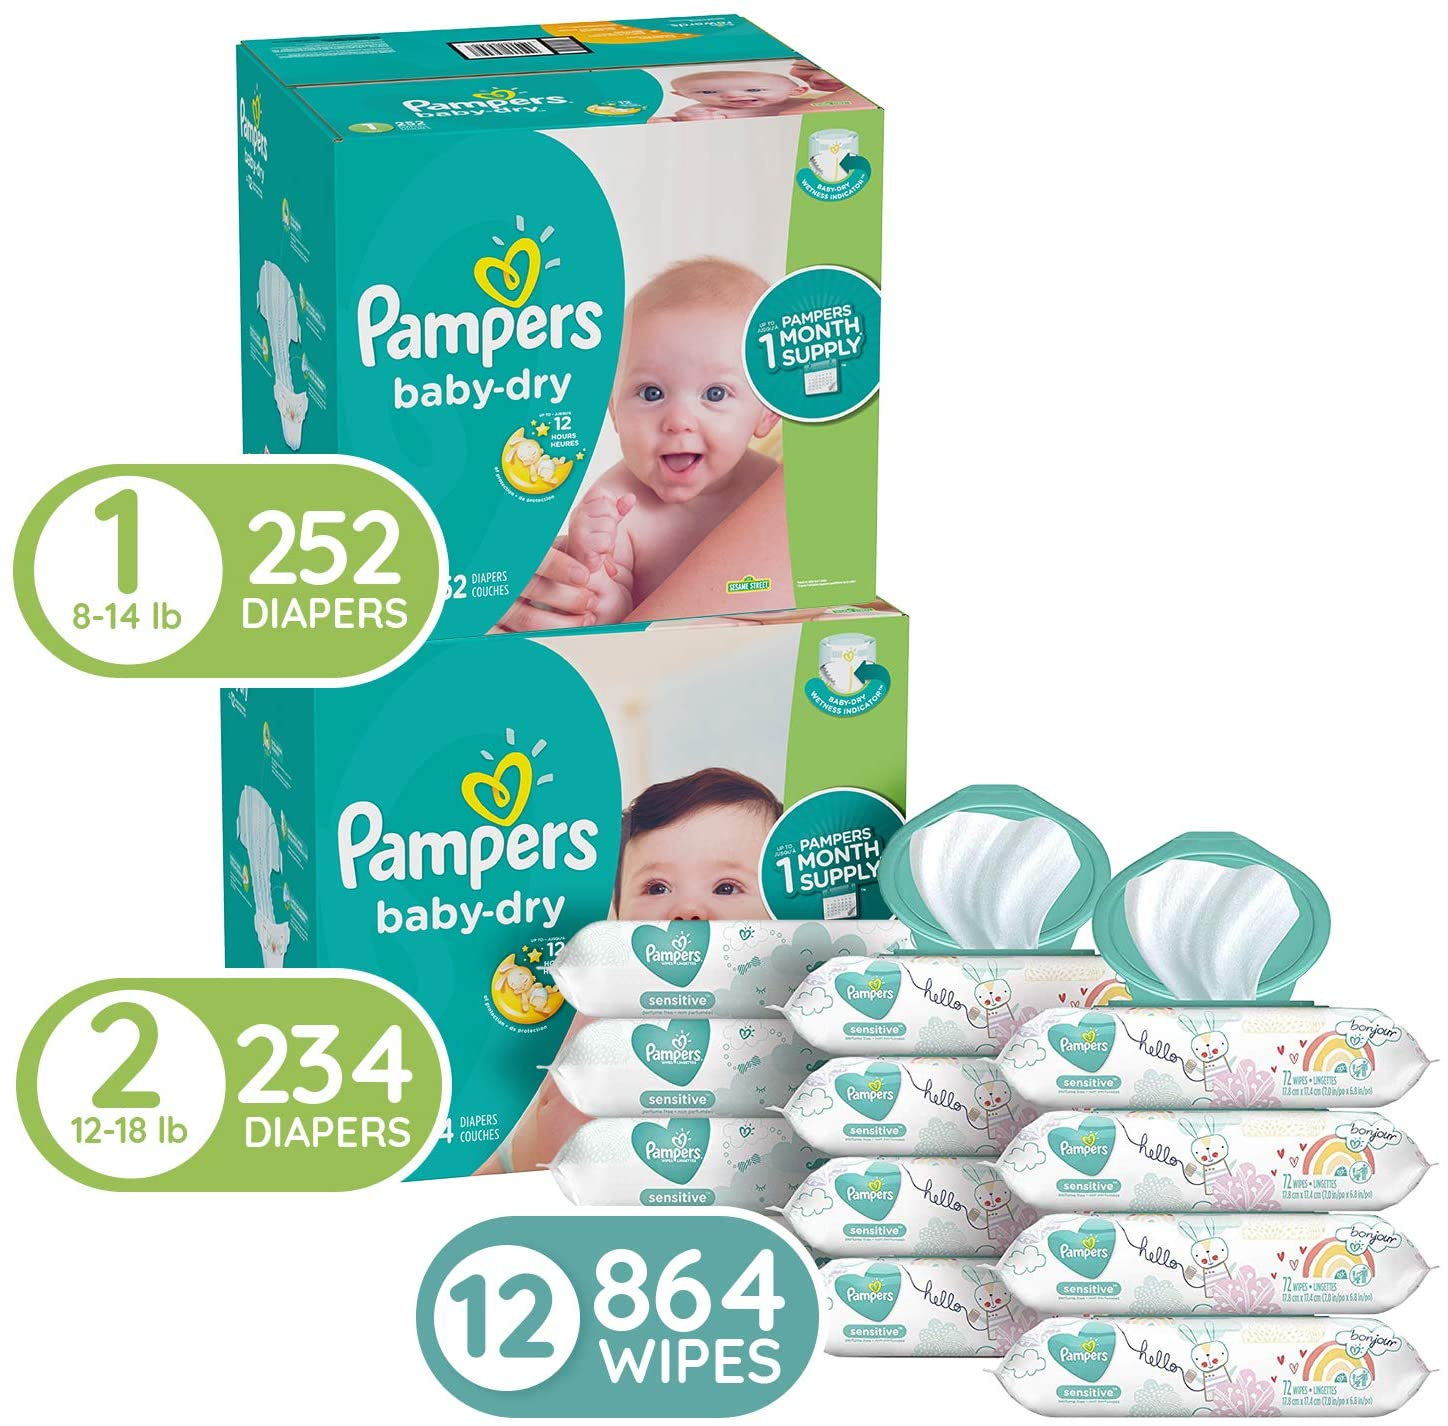 Pampers Baby Diapers and Wipes Starter Kit for $99.33 Shipped! (Reg. Price $132.97)